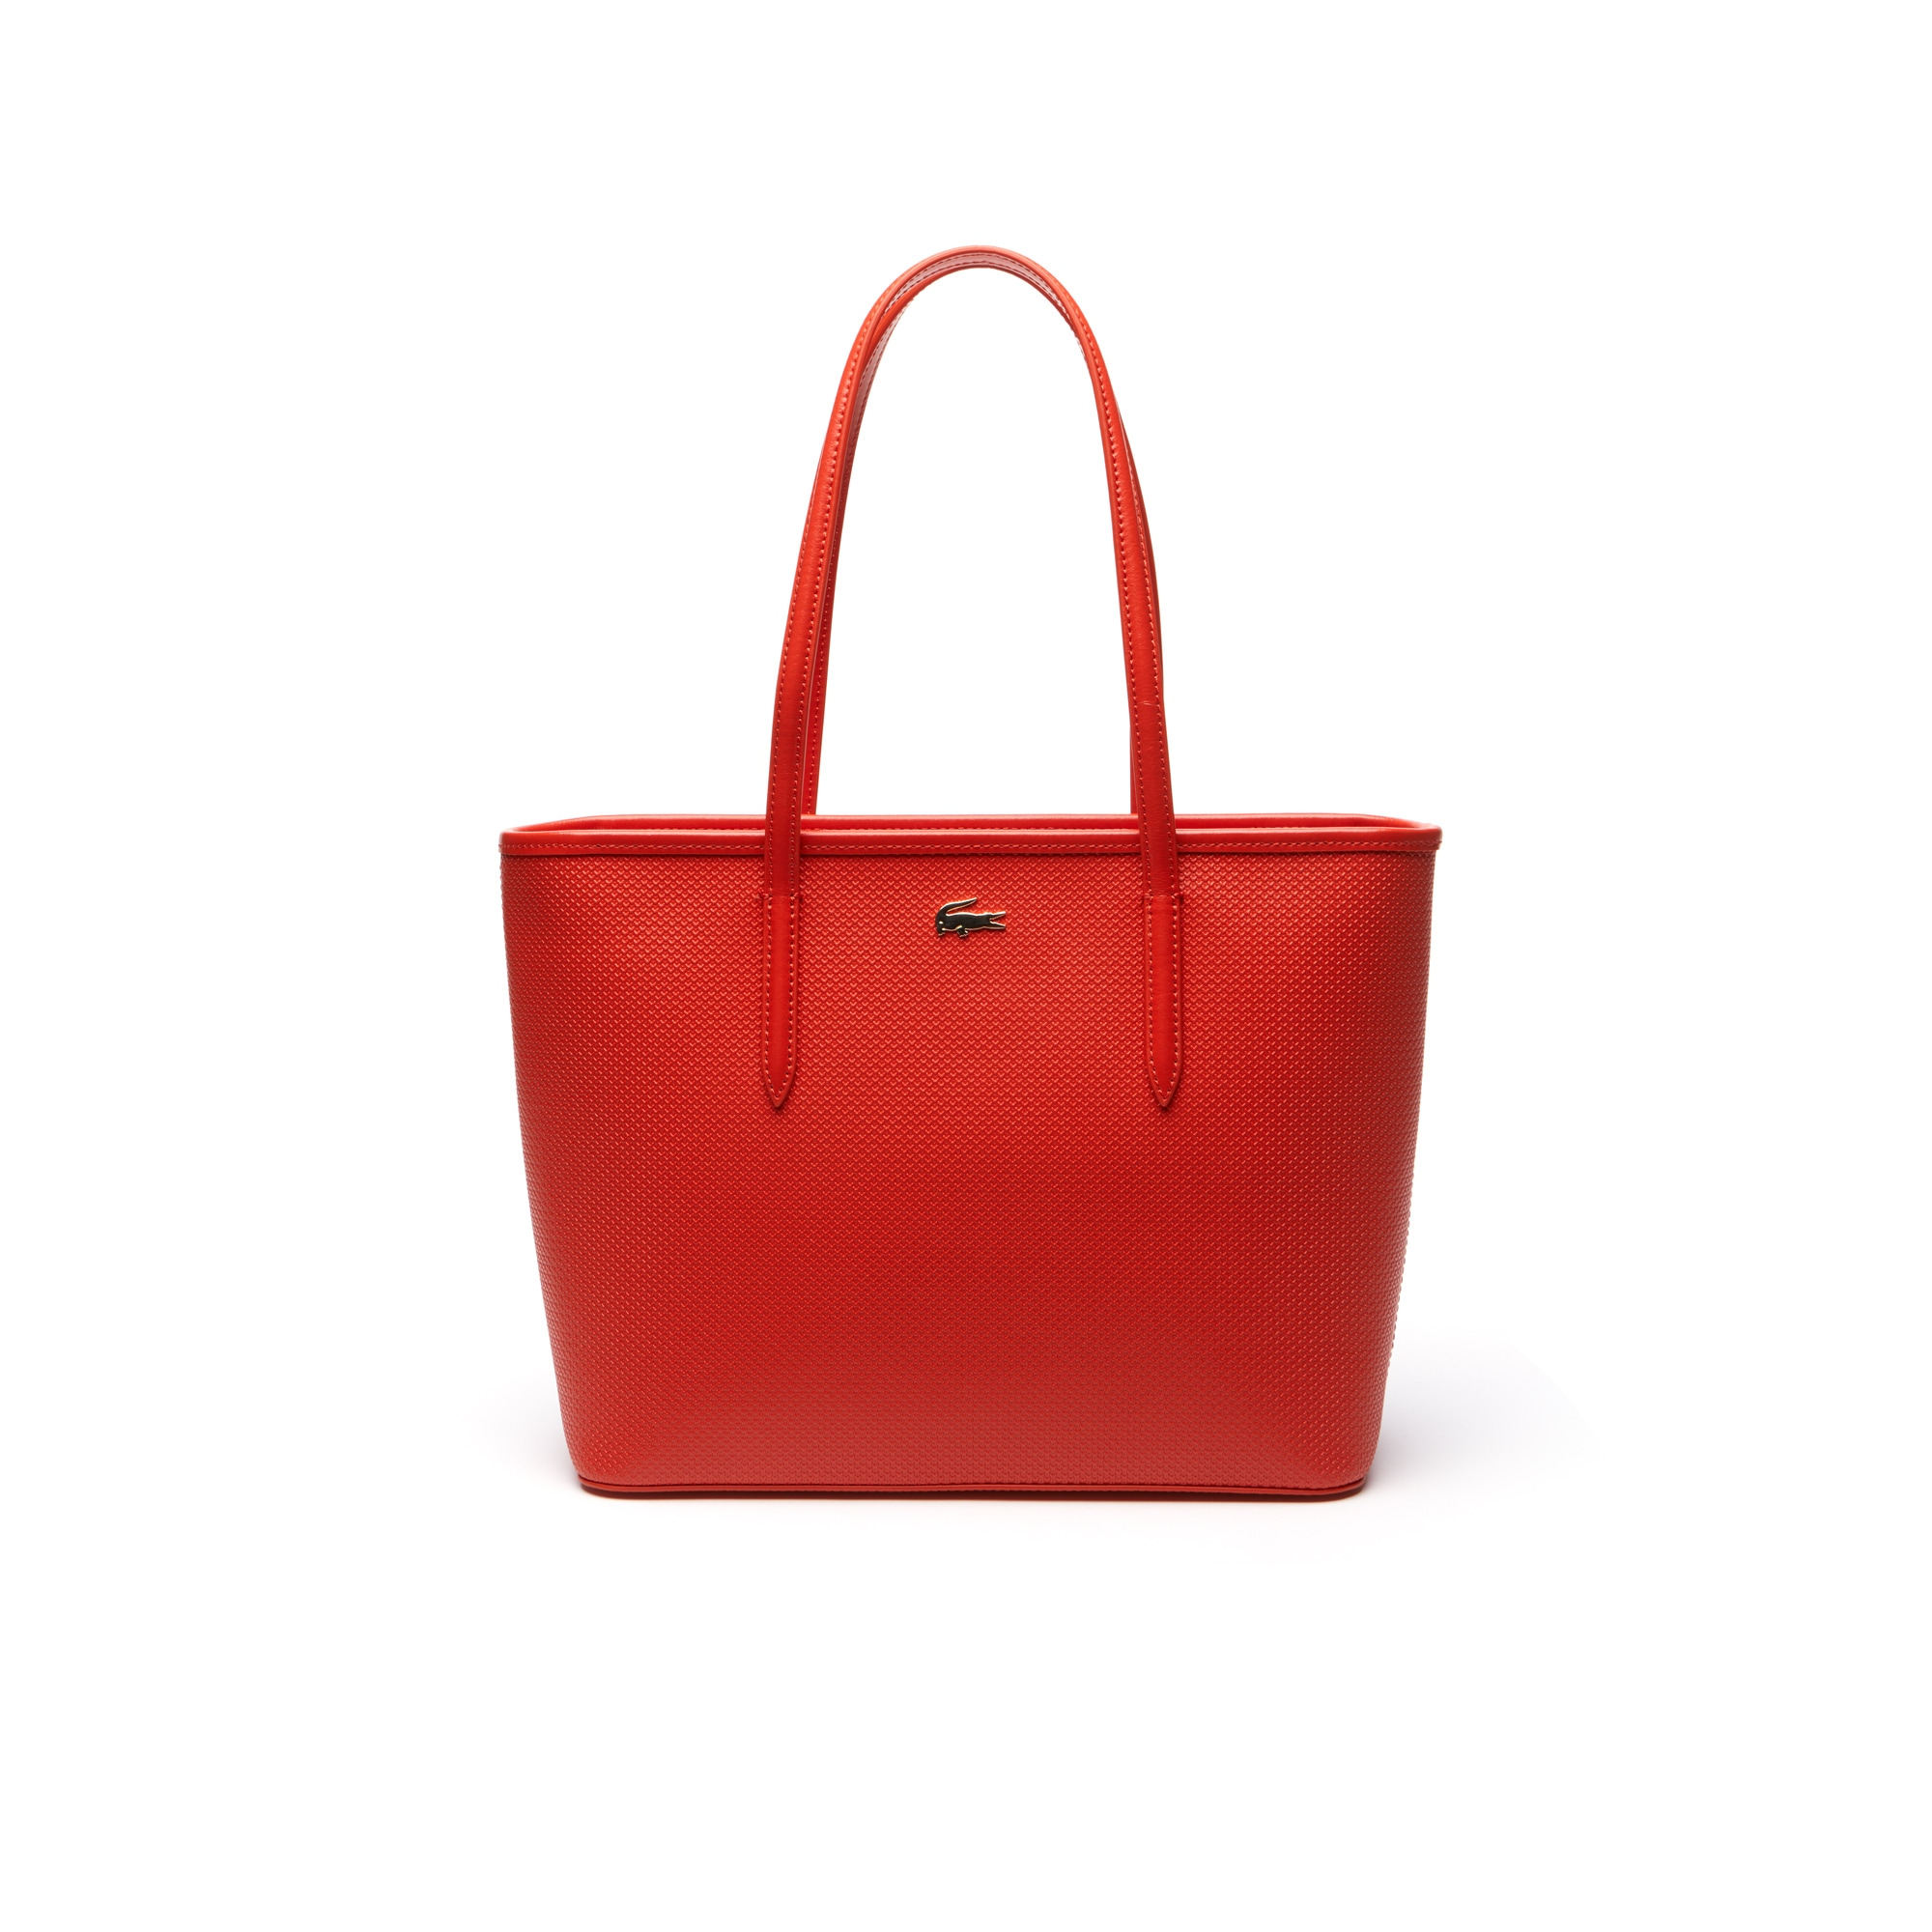 Chantaco-shopper dames piquéleer met rits